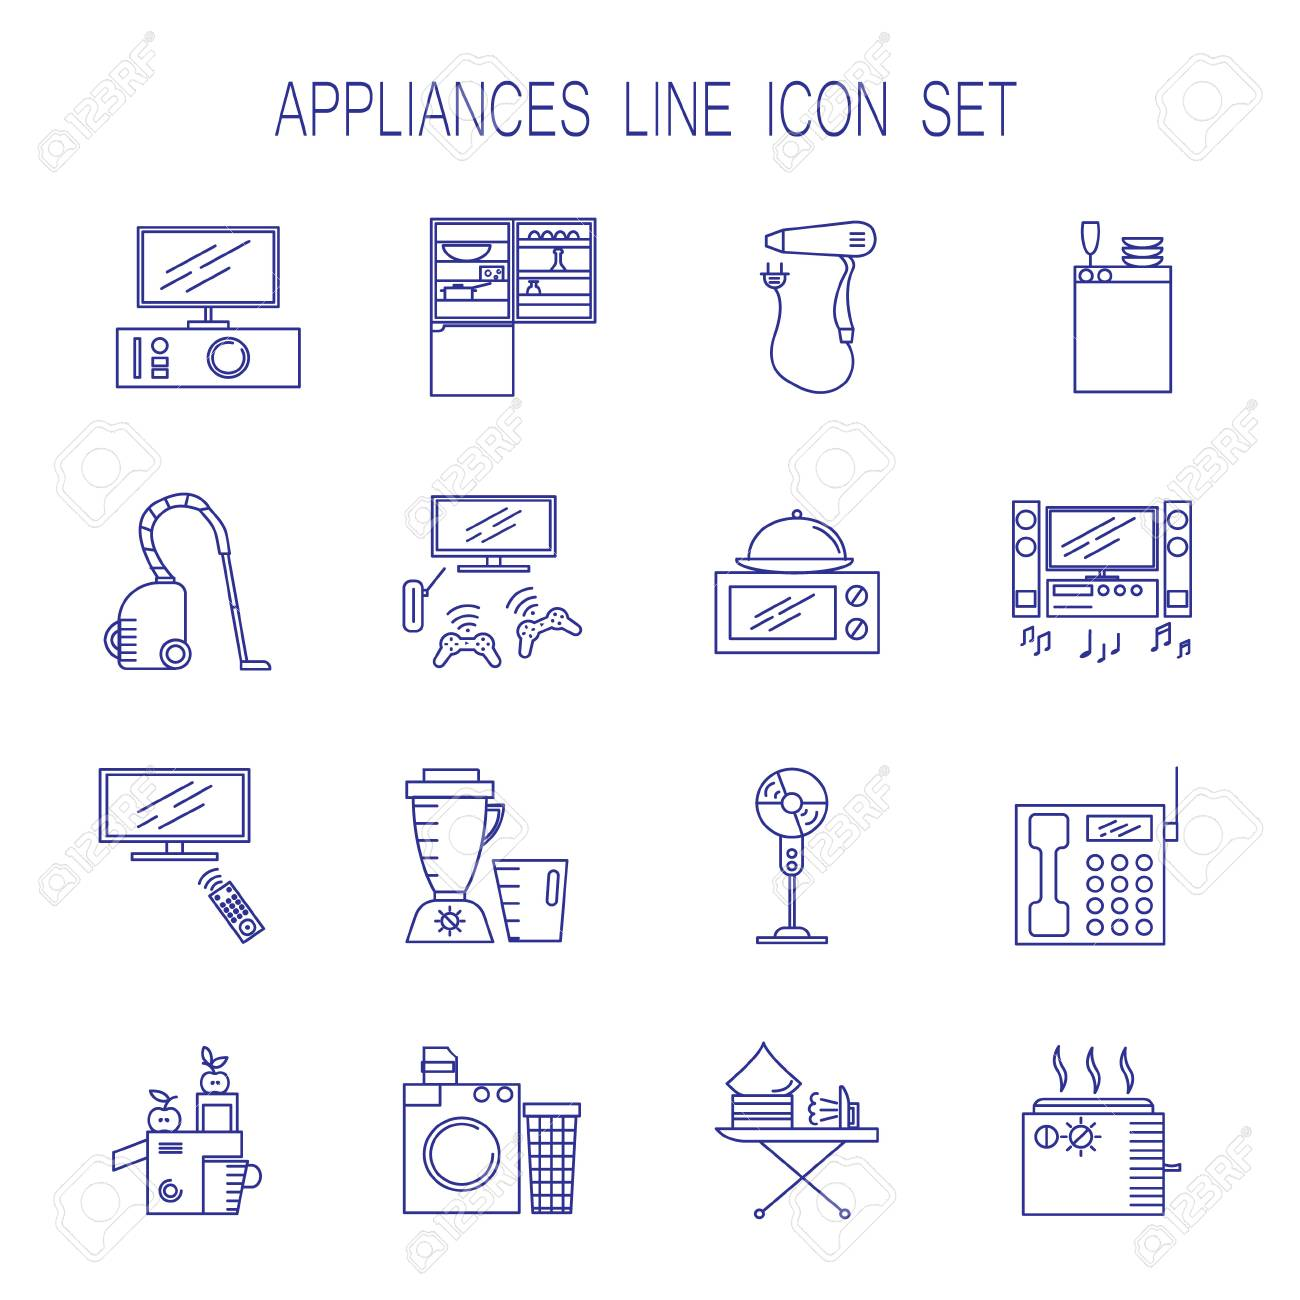 Appliances Line Icon Set Collection Of Vector Symbols On The